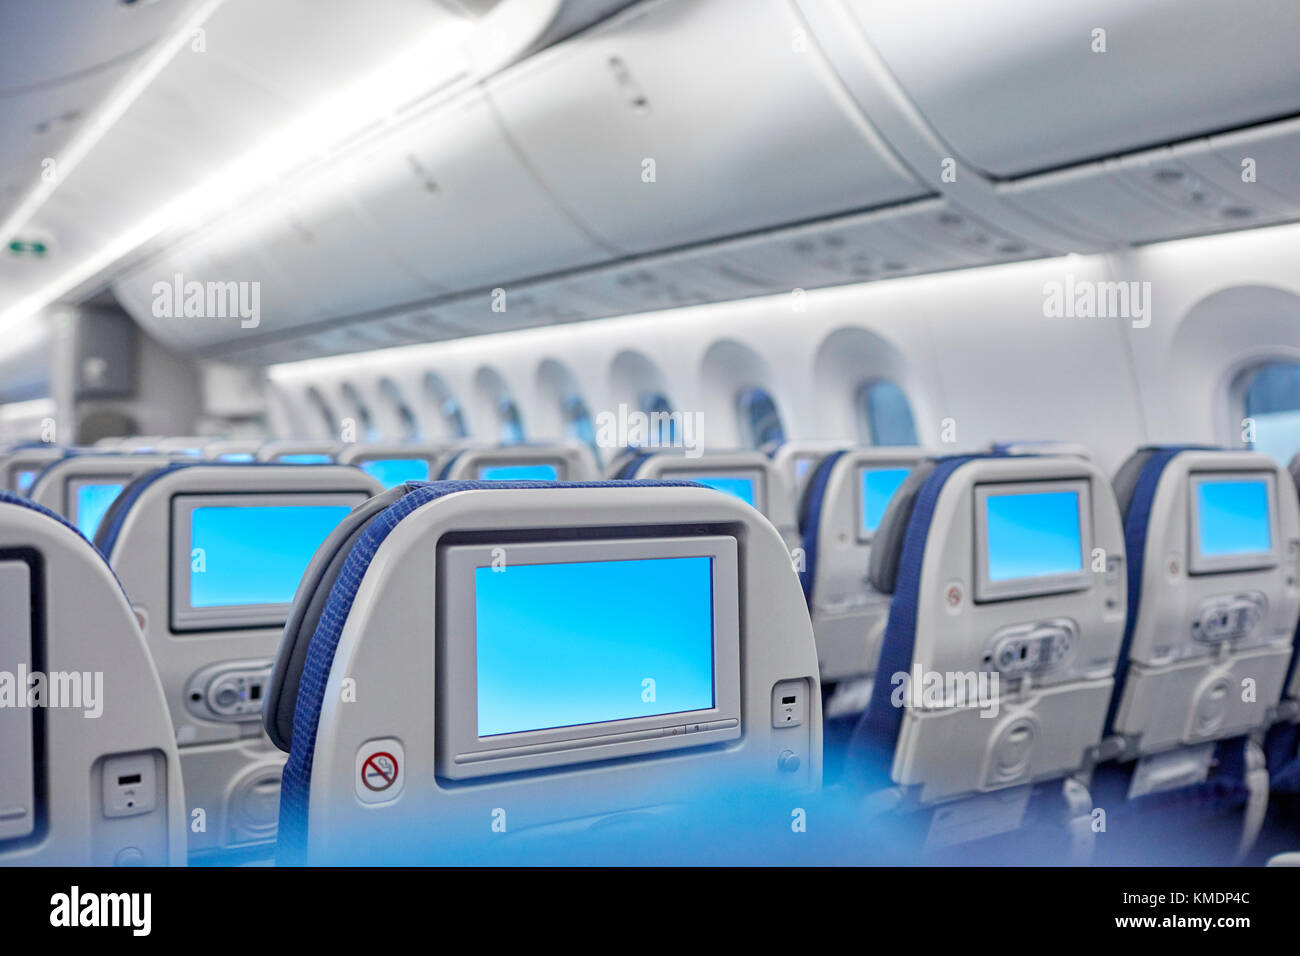 Entertainment screens on seats in airplane - Stock Image